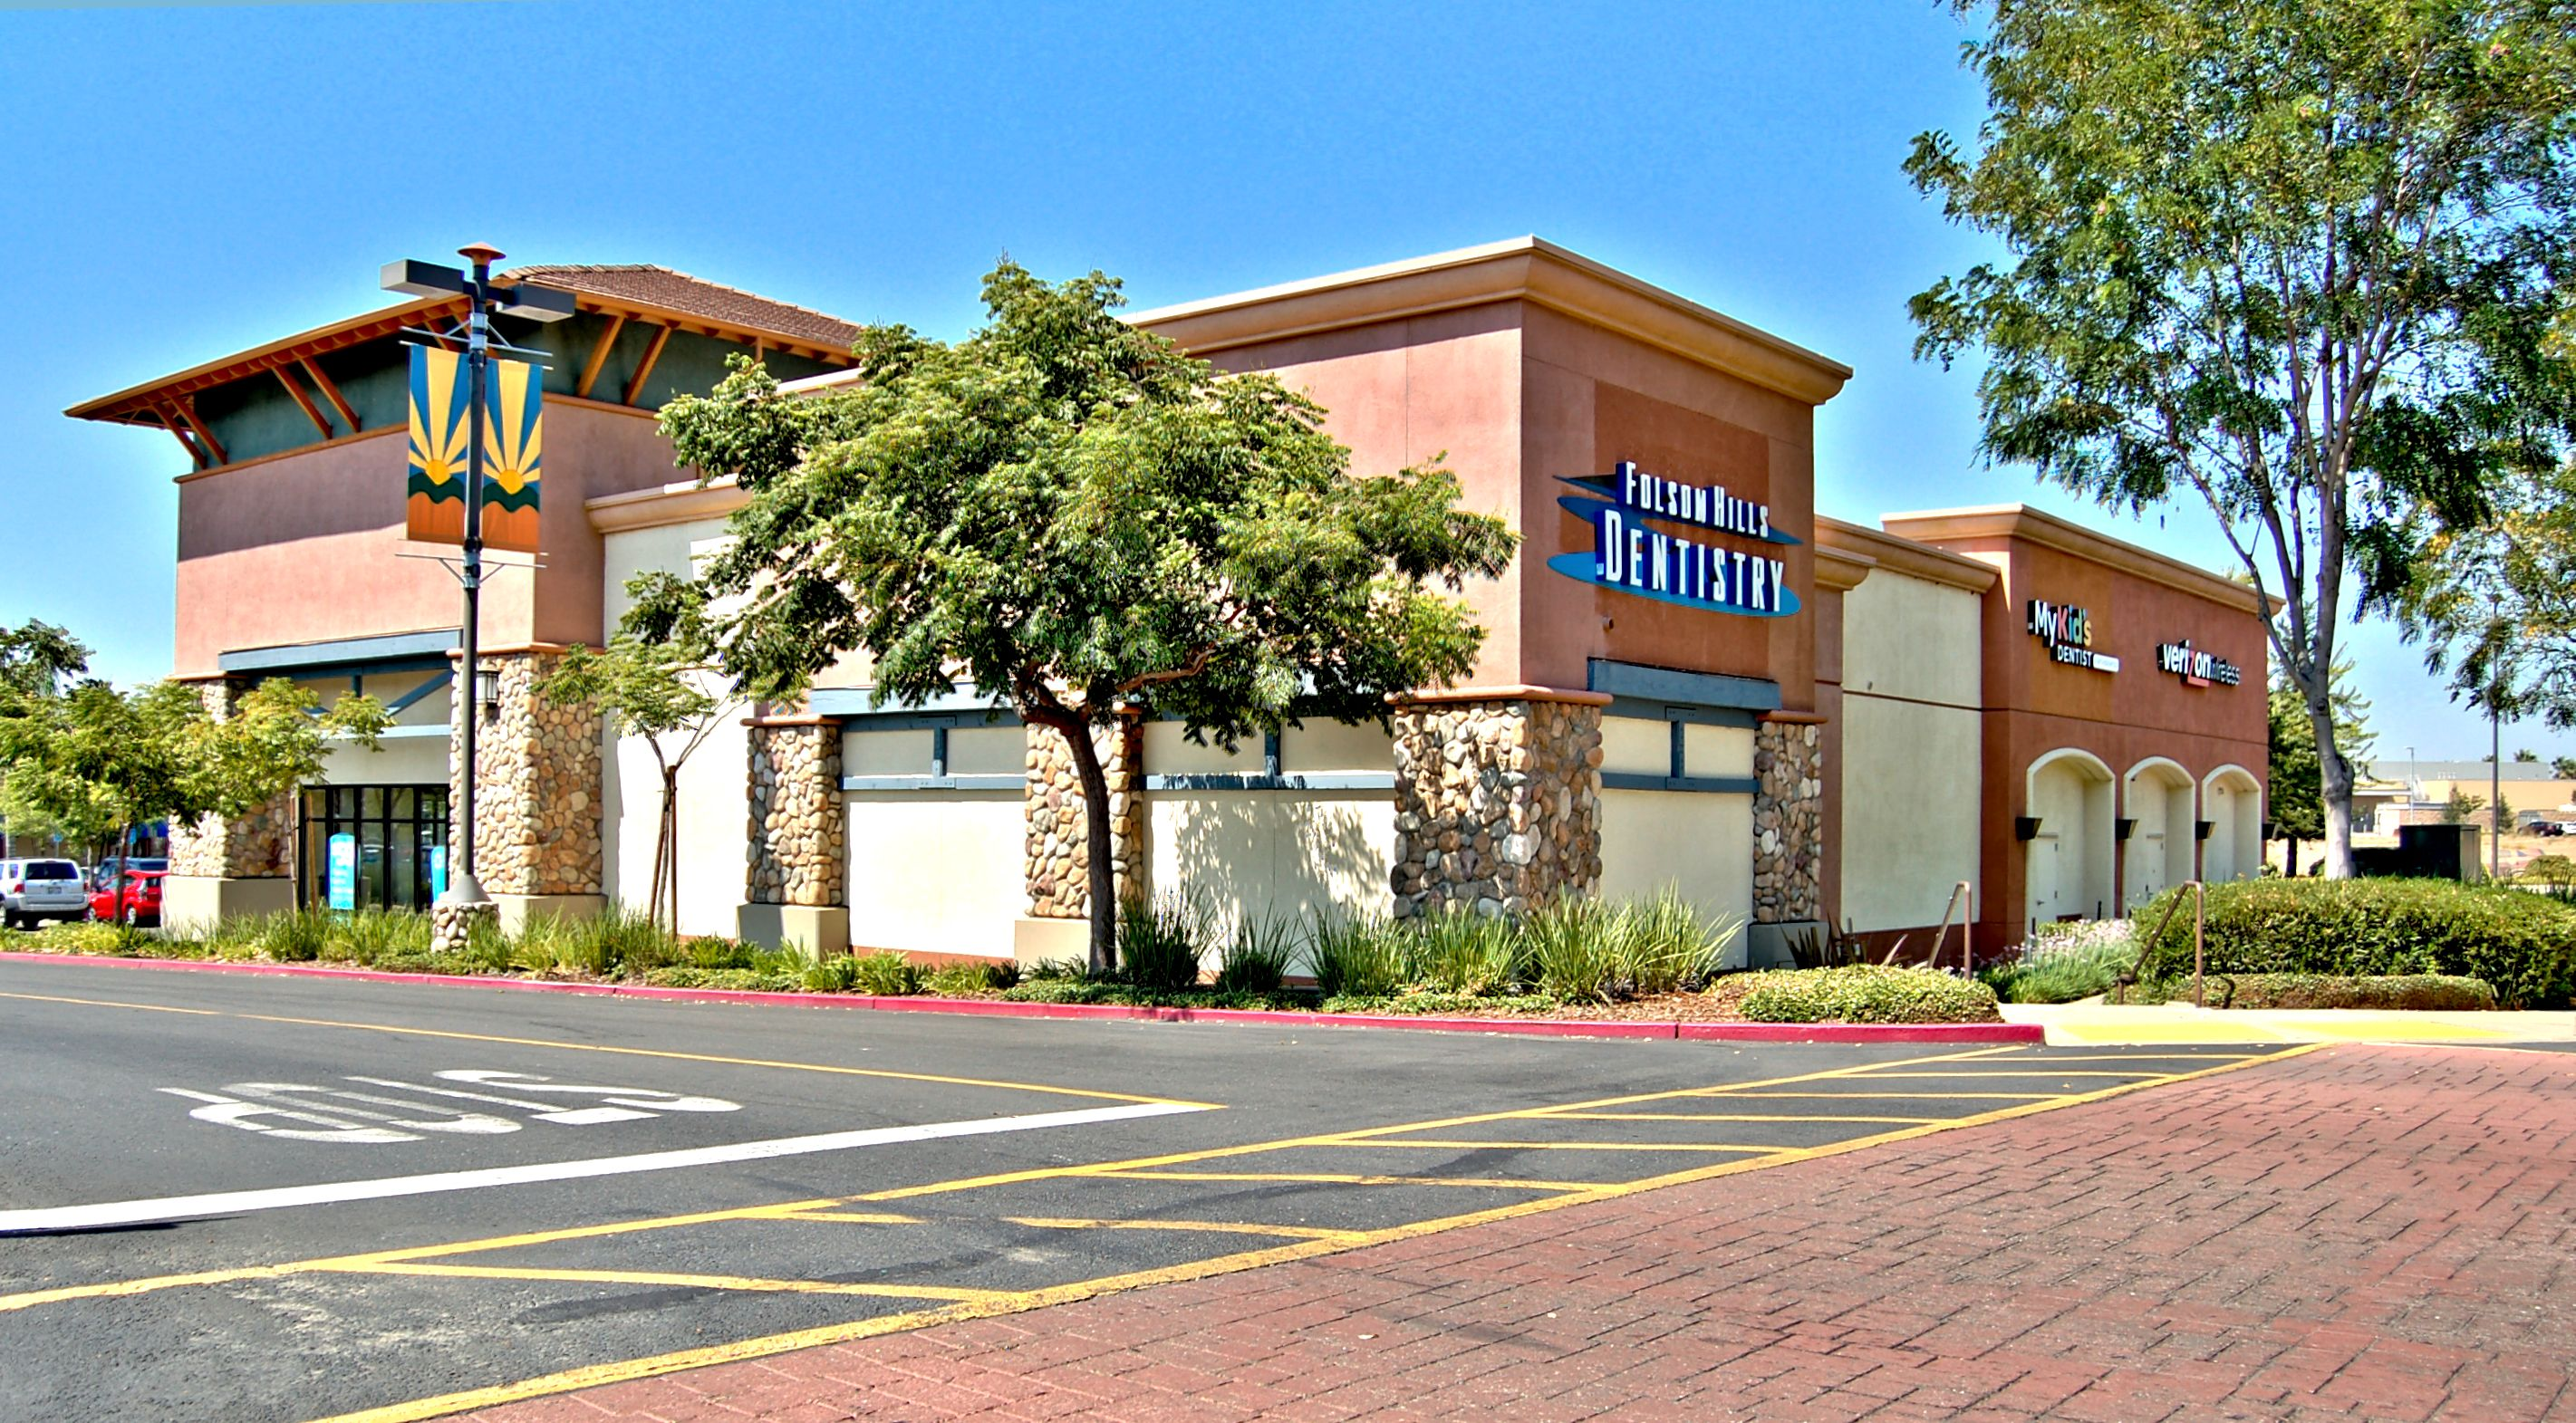 Folsom hills dentistry and orthodontics in folsom ca whitepages Olive garden citrus heights ca